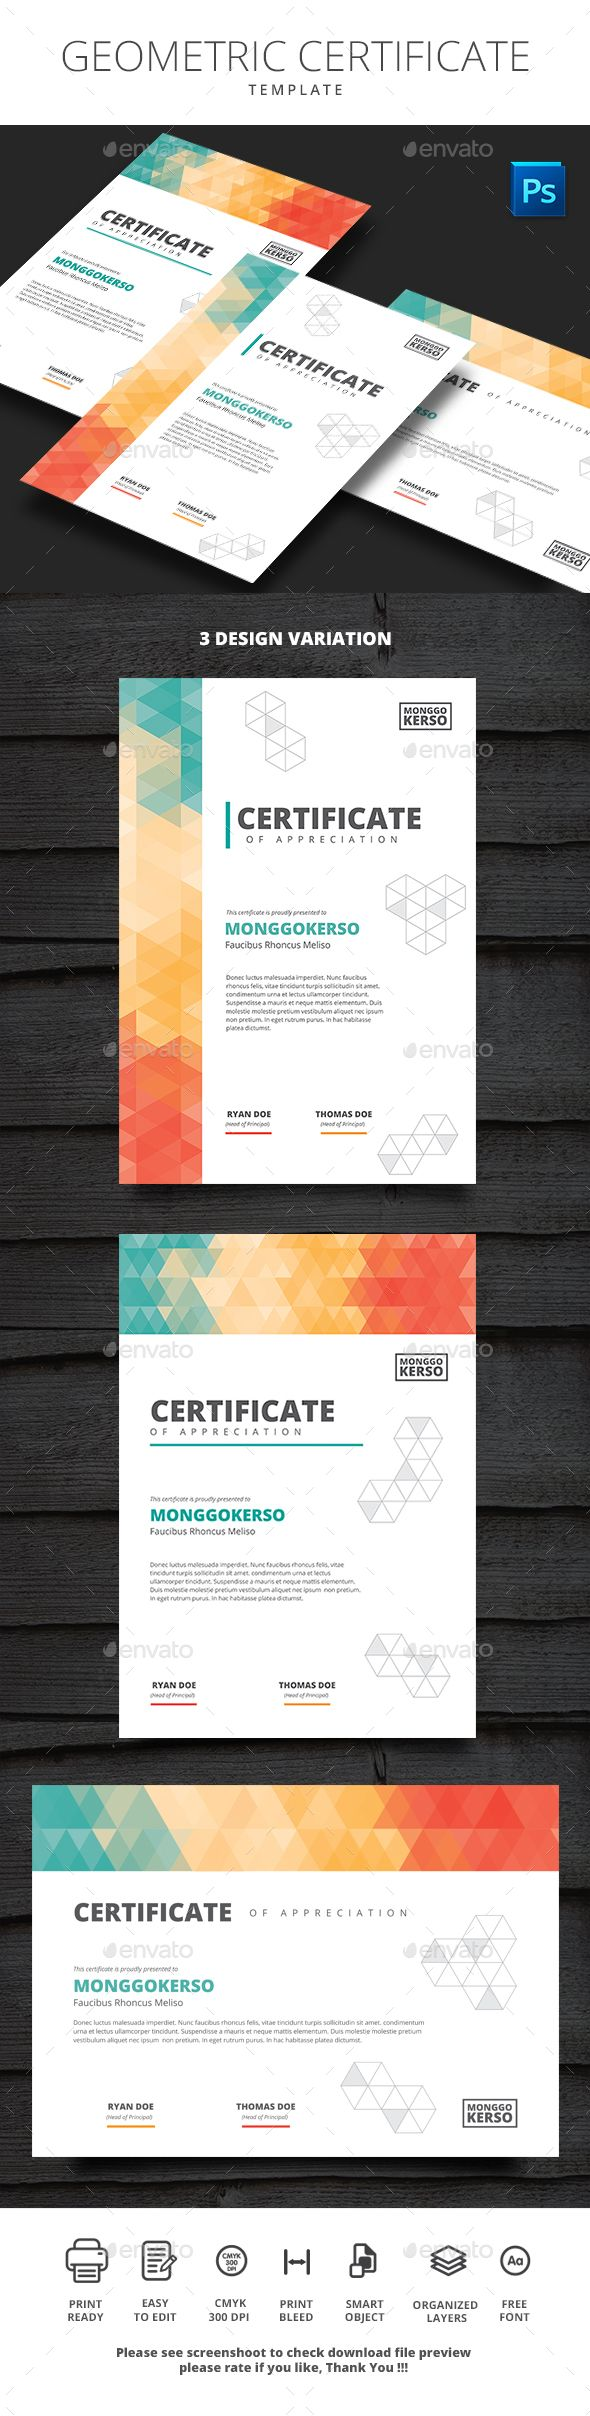 Geometric certificate photoshop psd certificate template geometric certificate photoshop psd certificate template 210x297 download https yelopaper Image collections